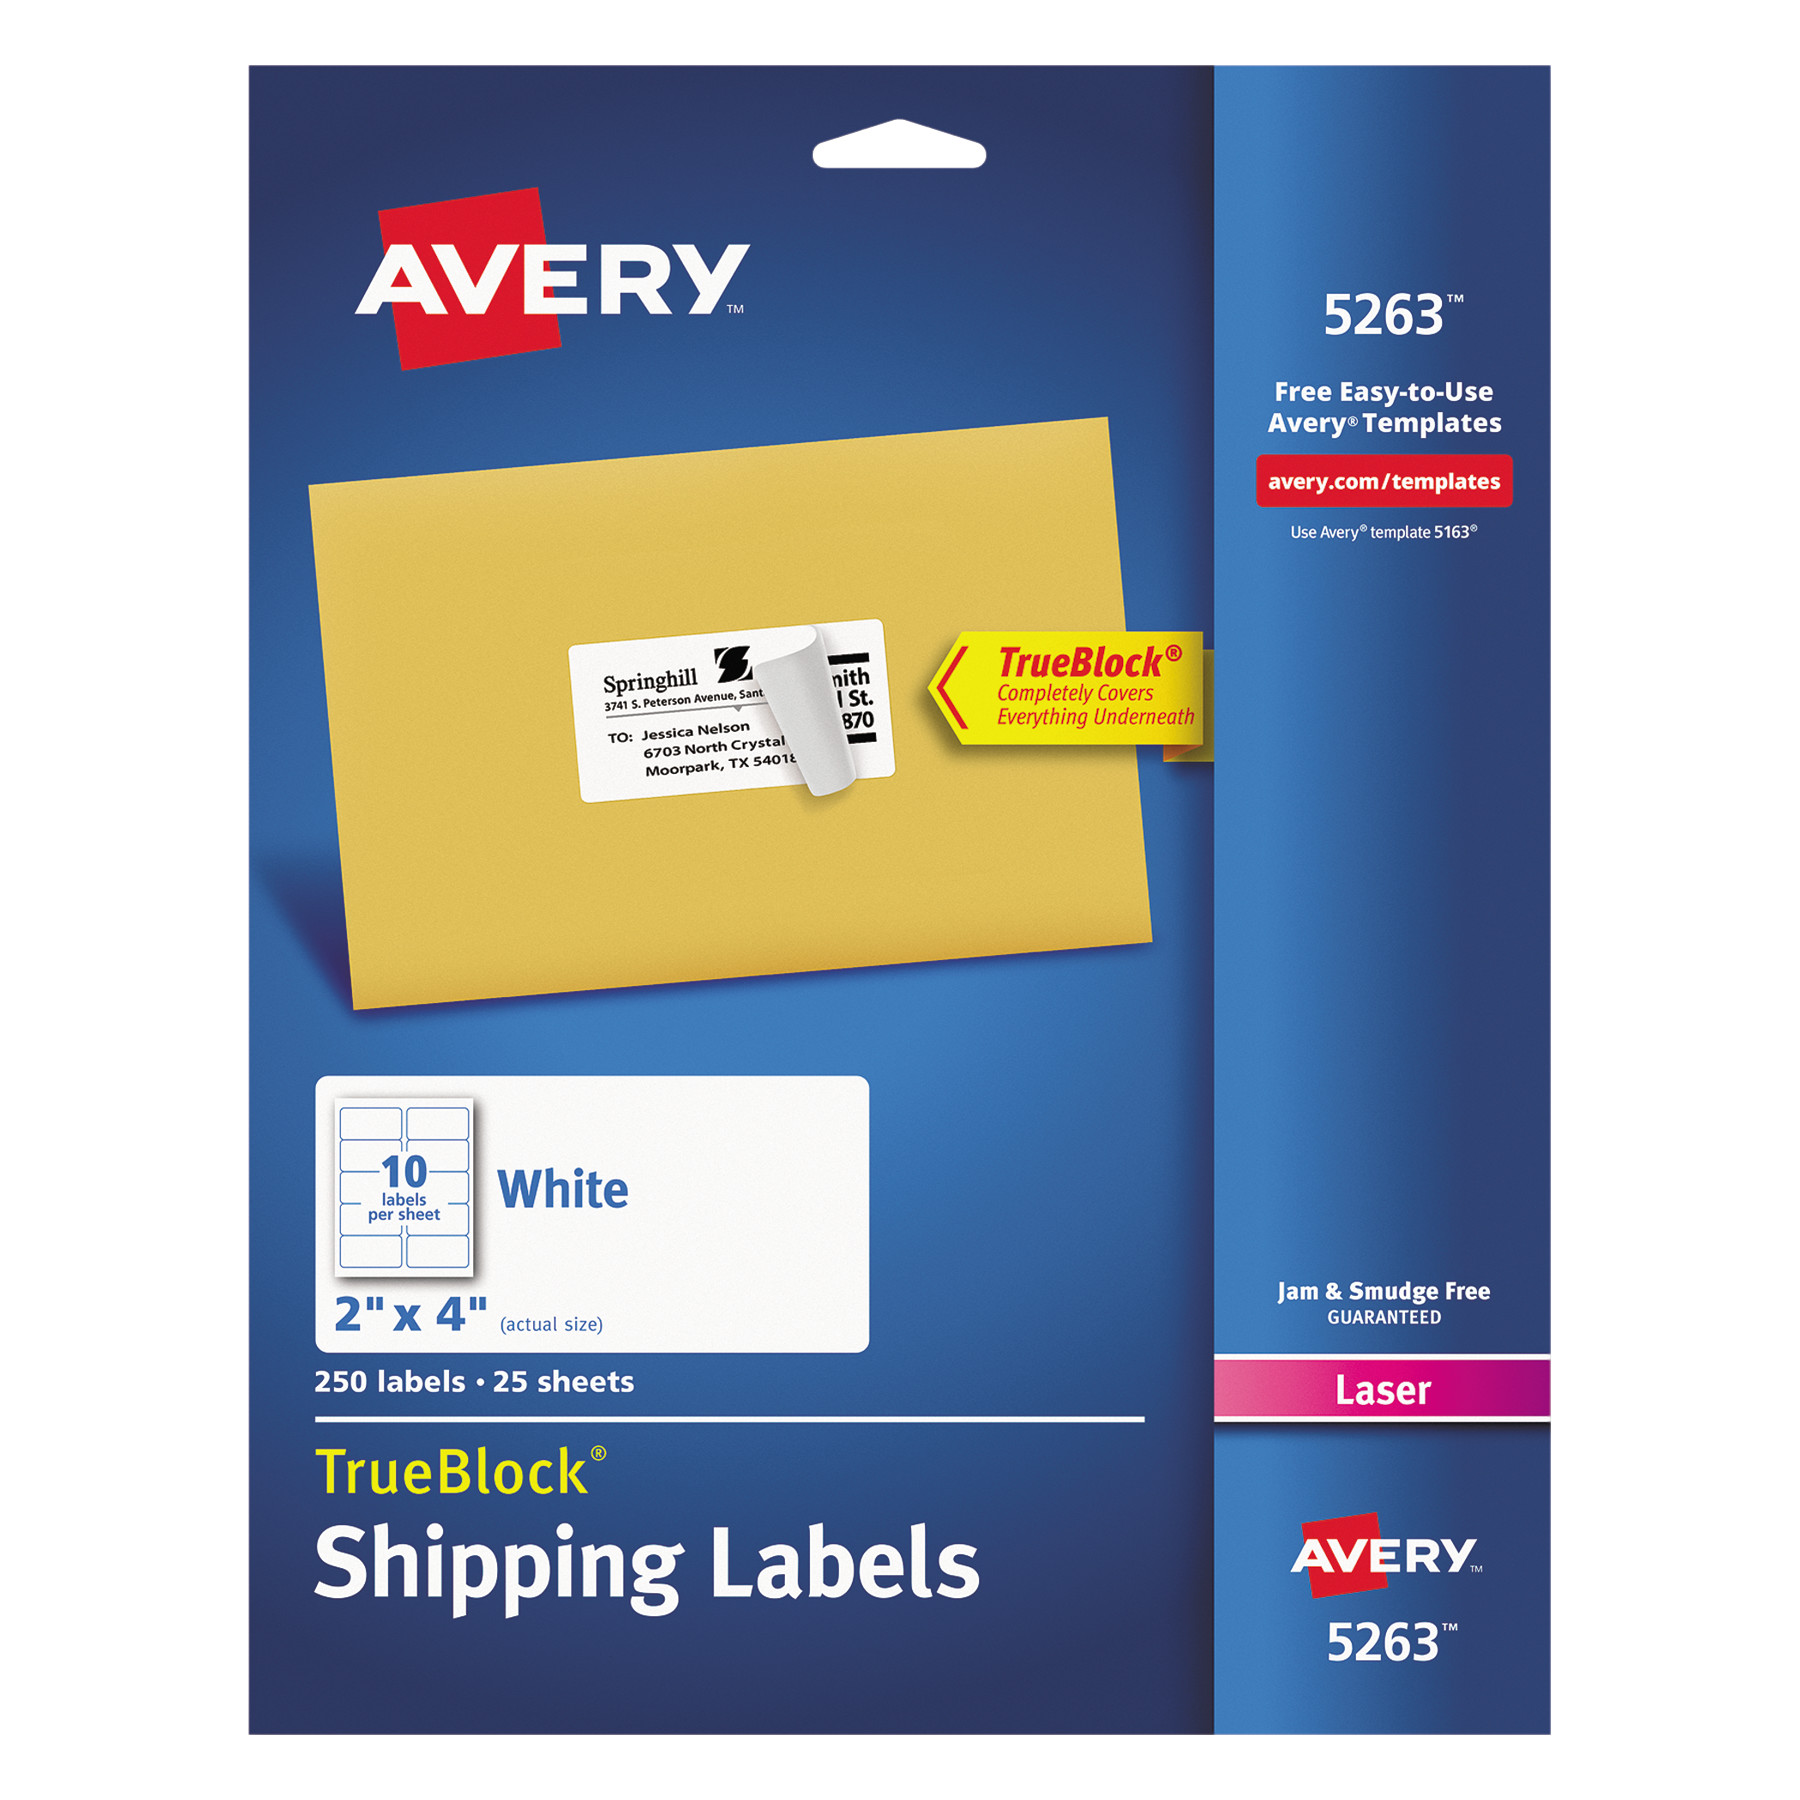 Averyr Shipping Labels With Trueblockr Technology For Laser